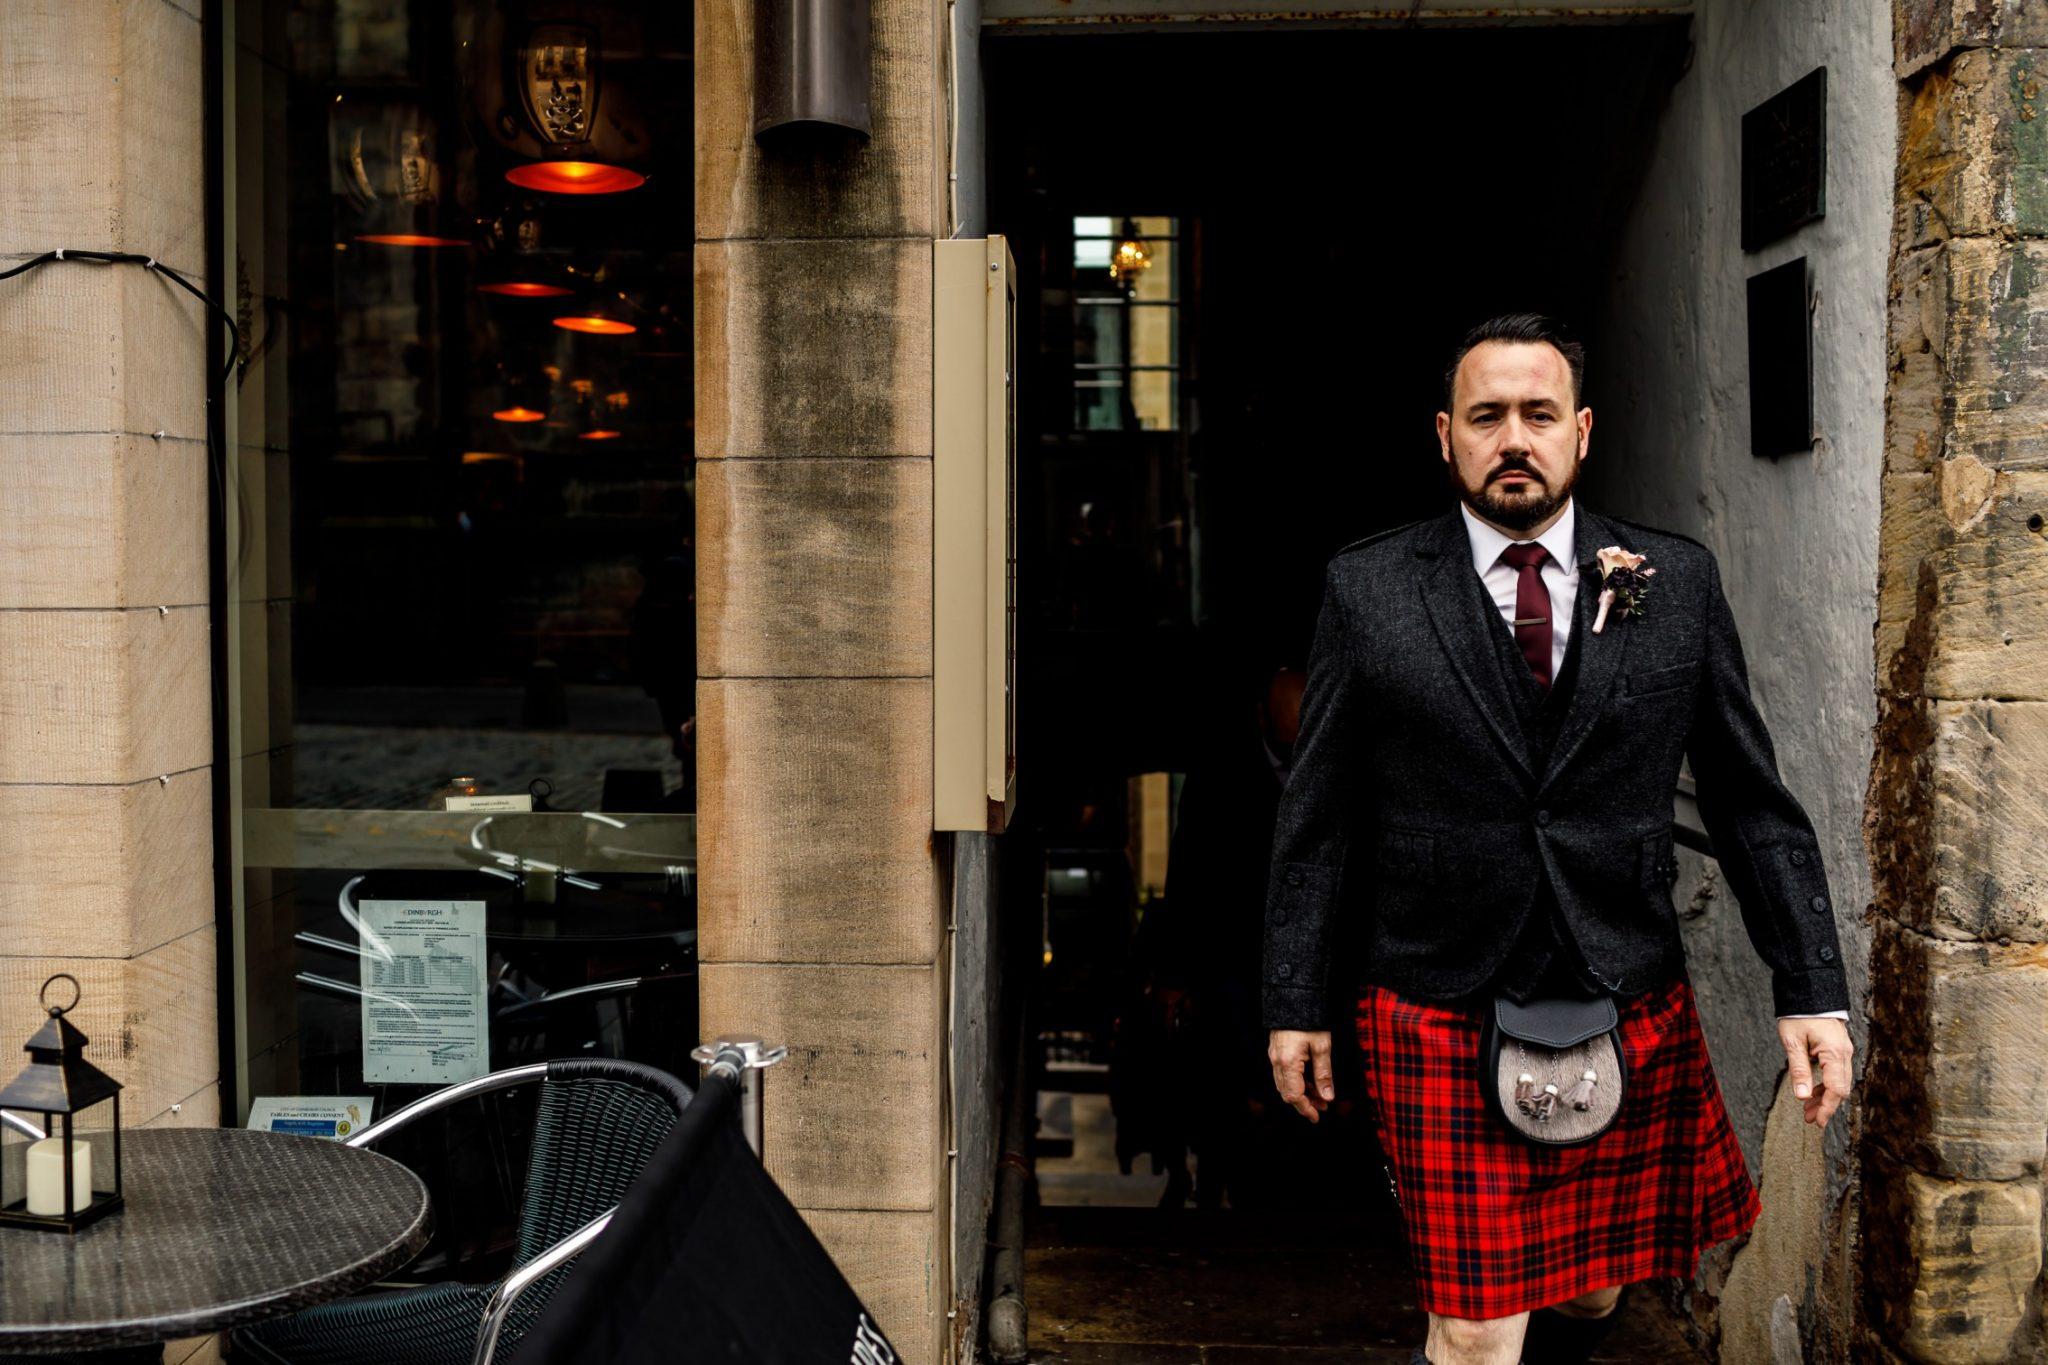 Unique Wedding Venues- Unconventional Wedding- Lina & Tom Photography- Scottish groom wearing kilt